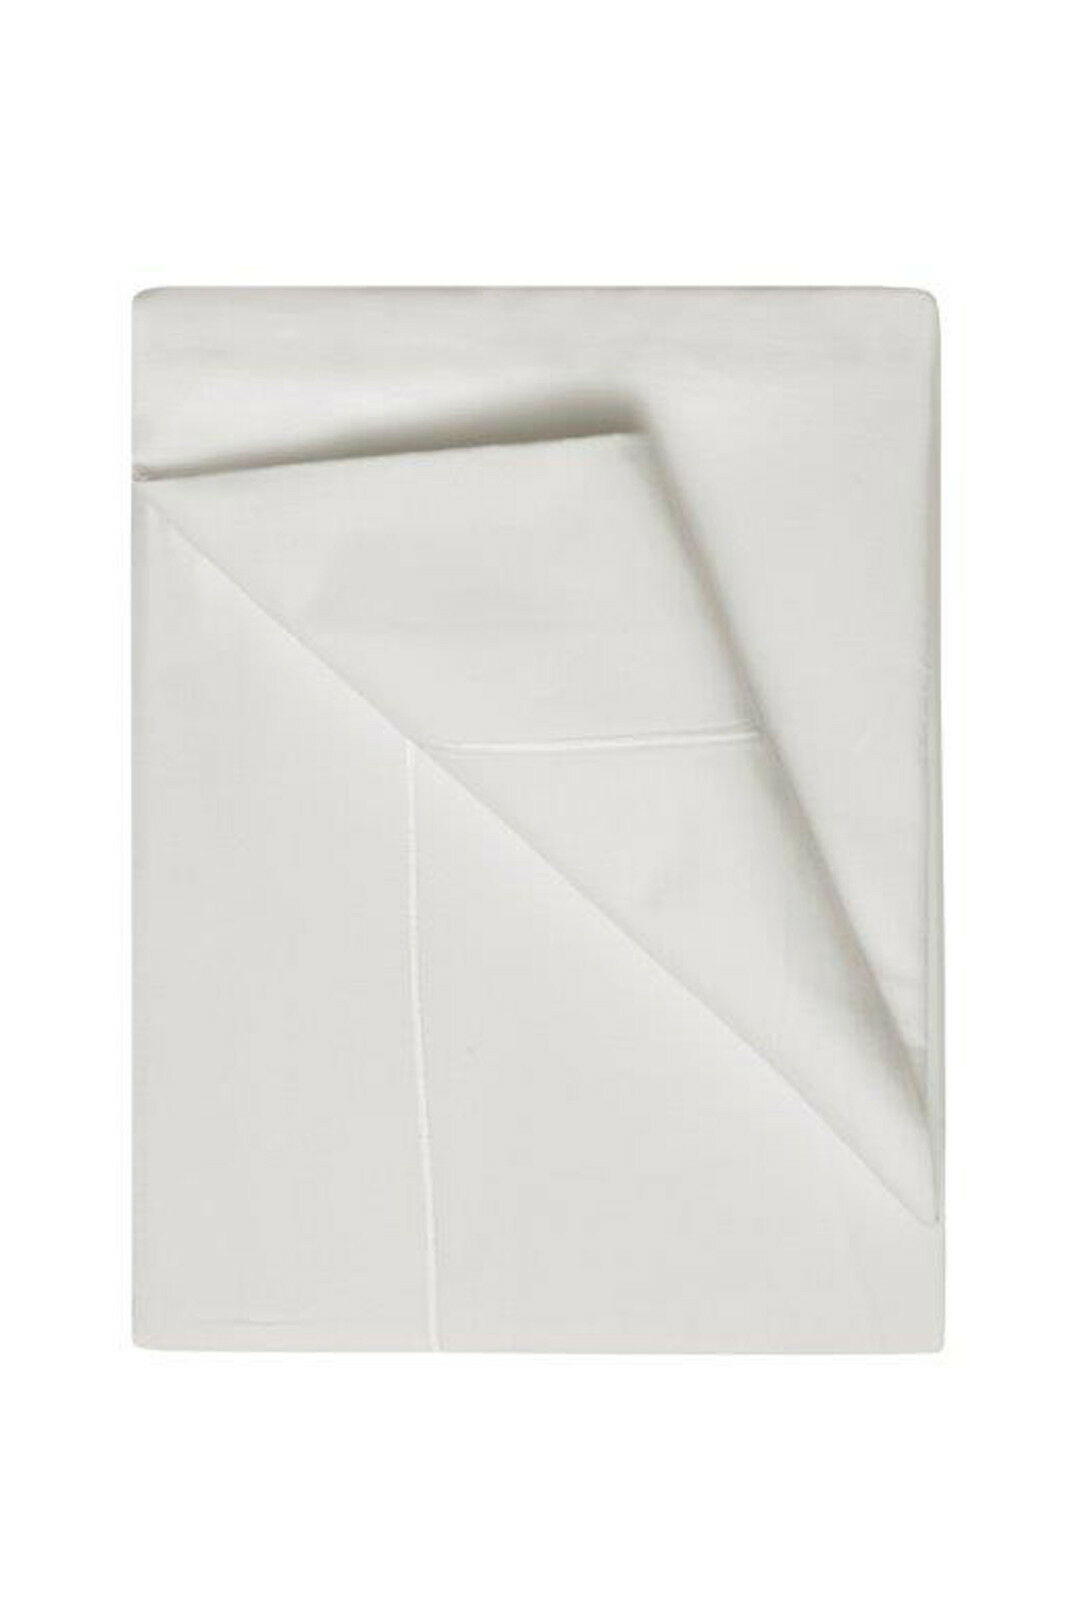 400 Thread Count Egyptian Cotton Flat Sheets Single Ply in Ivory All Größes